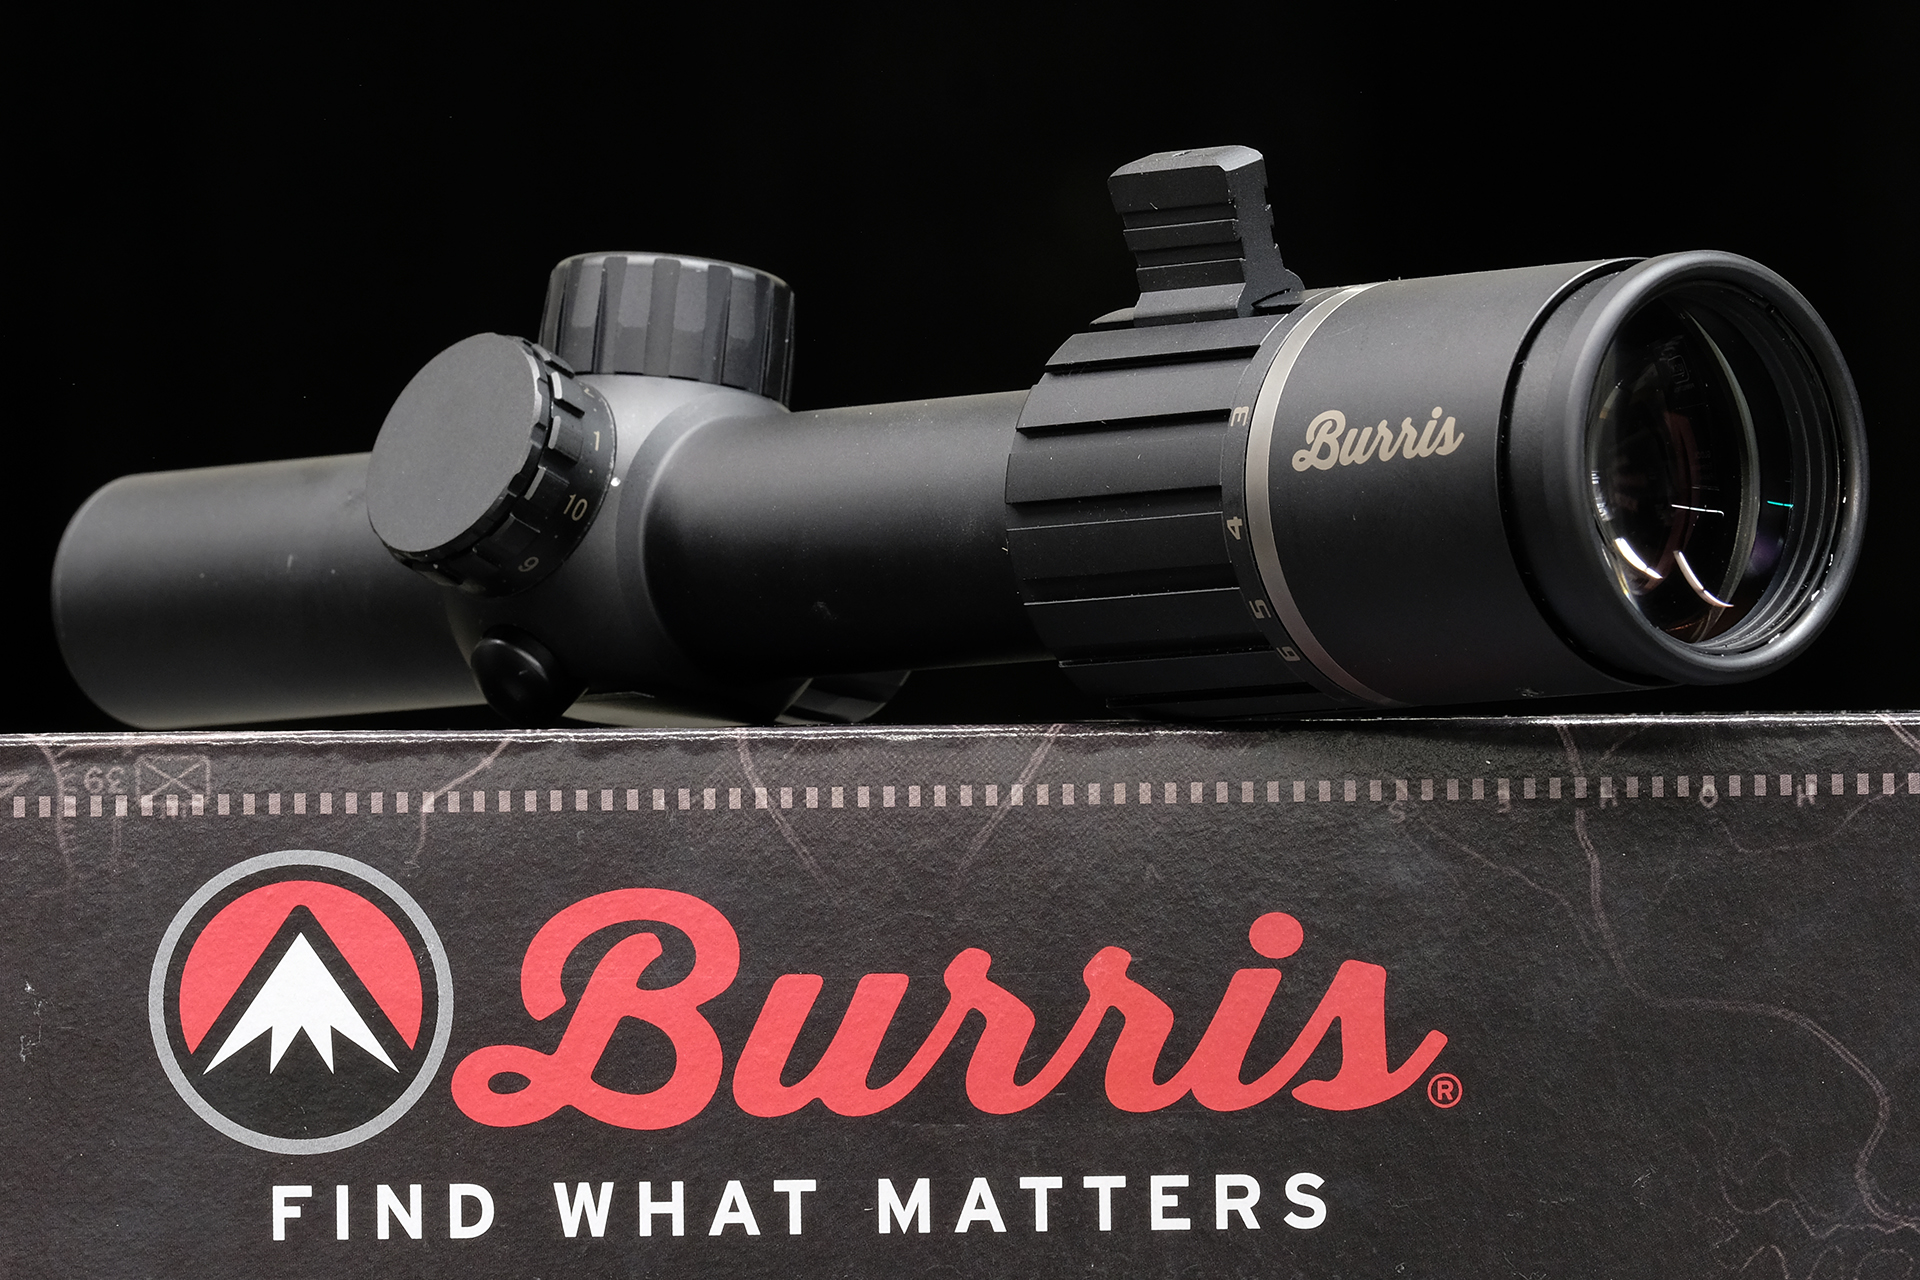 Burris rt u rene hild tactical